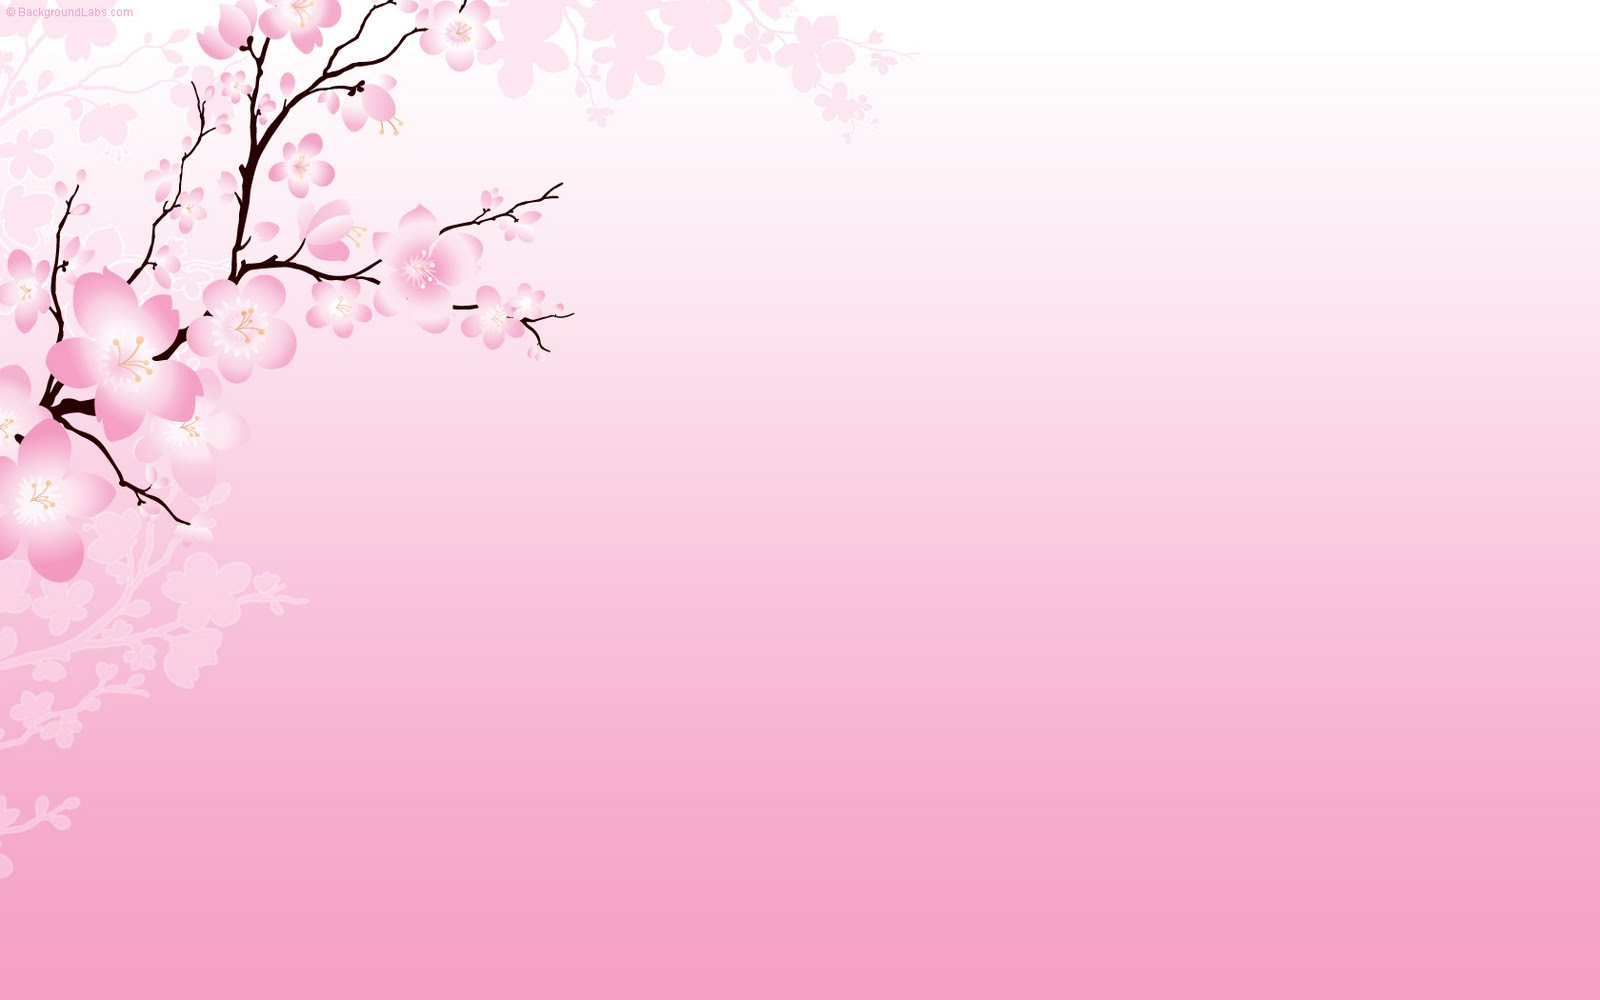 hd cherry blossom backgrounds - photo #34